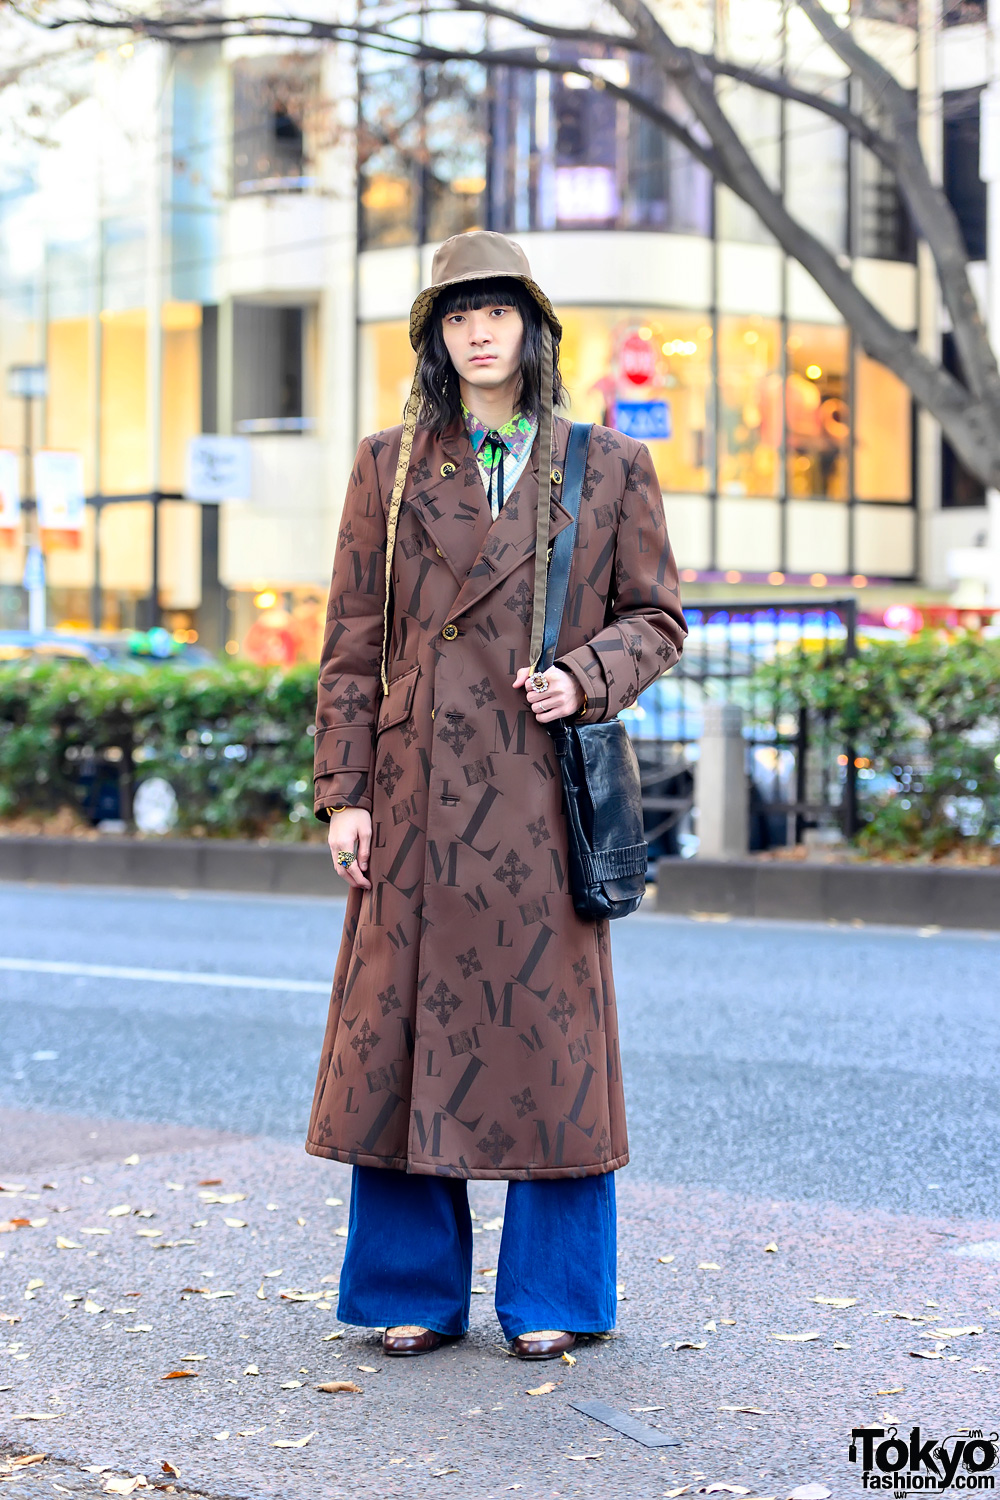 Luna Mattino Japanese Street Style in Harajuku w/ Dries Van Noten, Paul Smith & Gianfranco Ferre